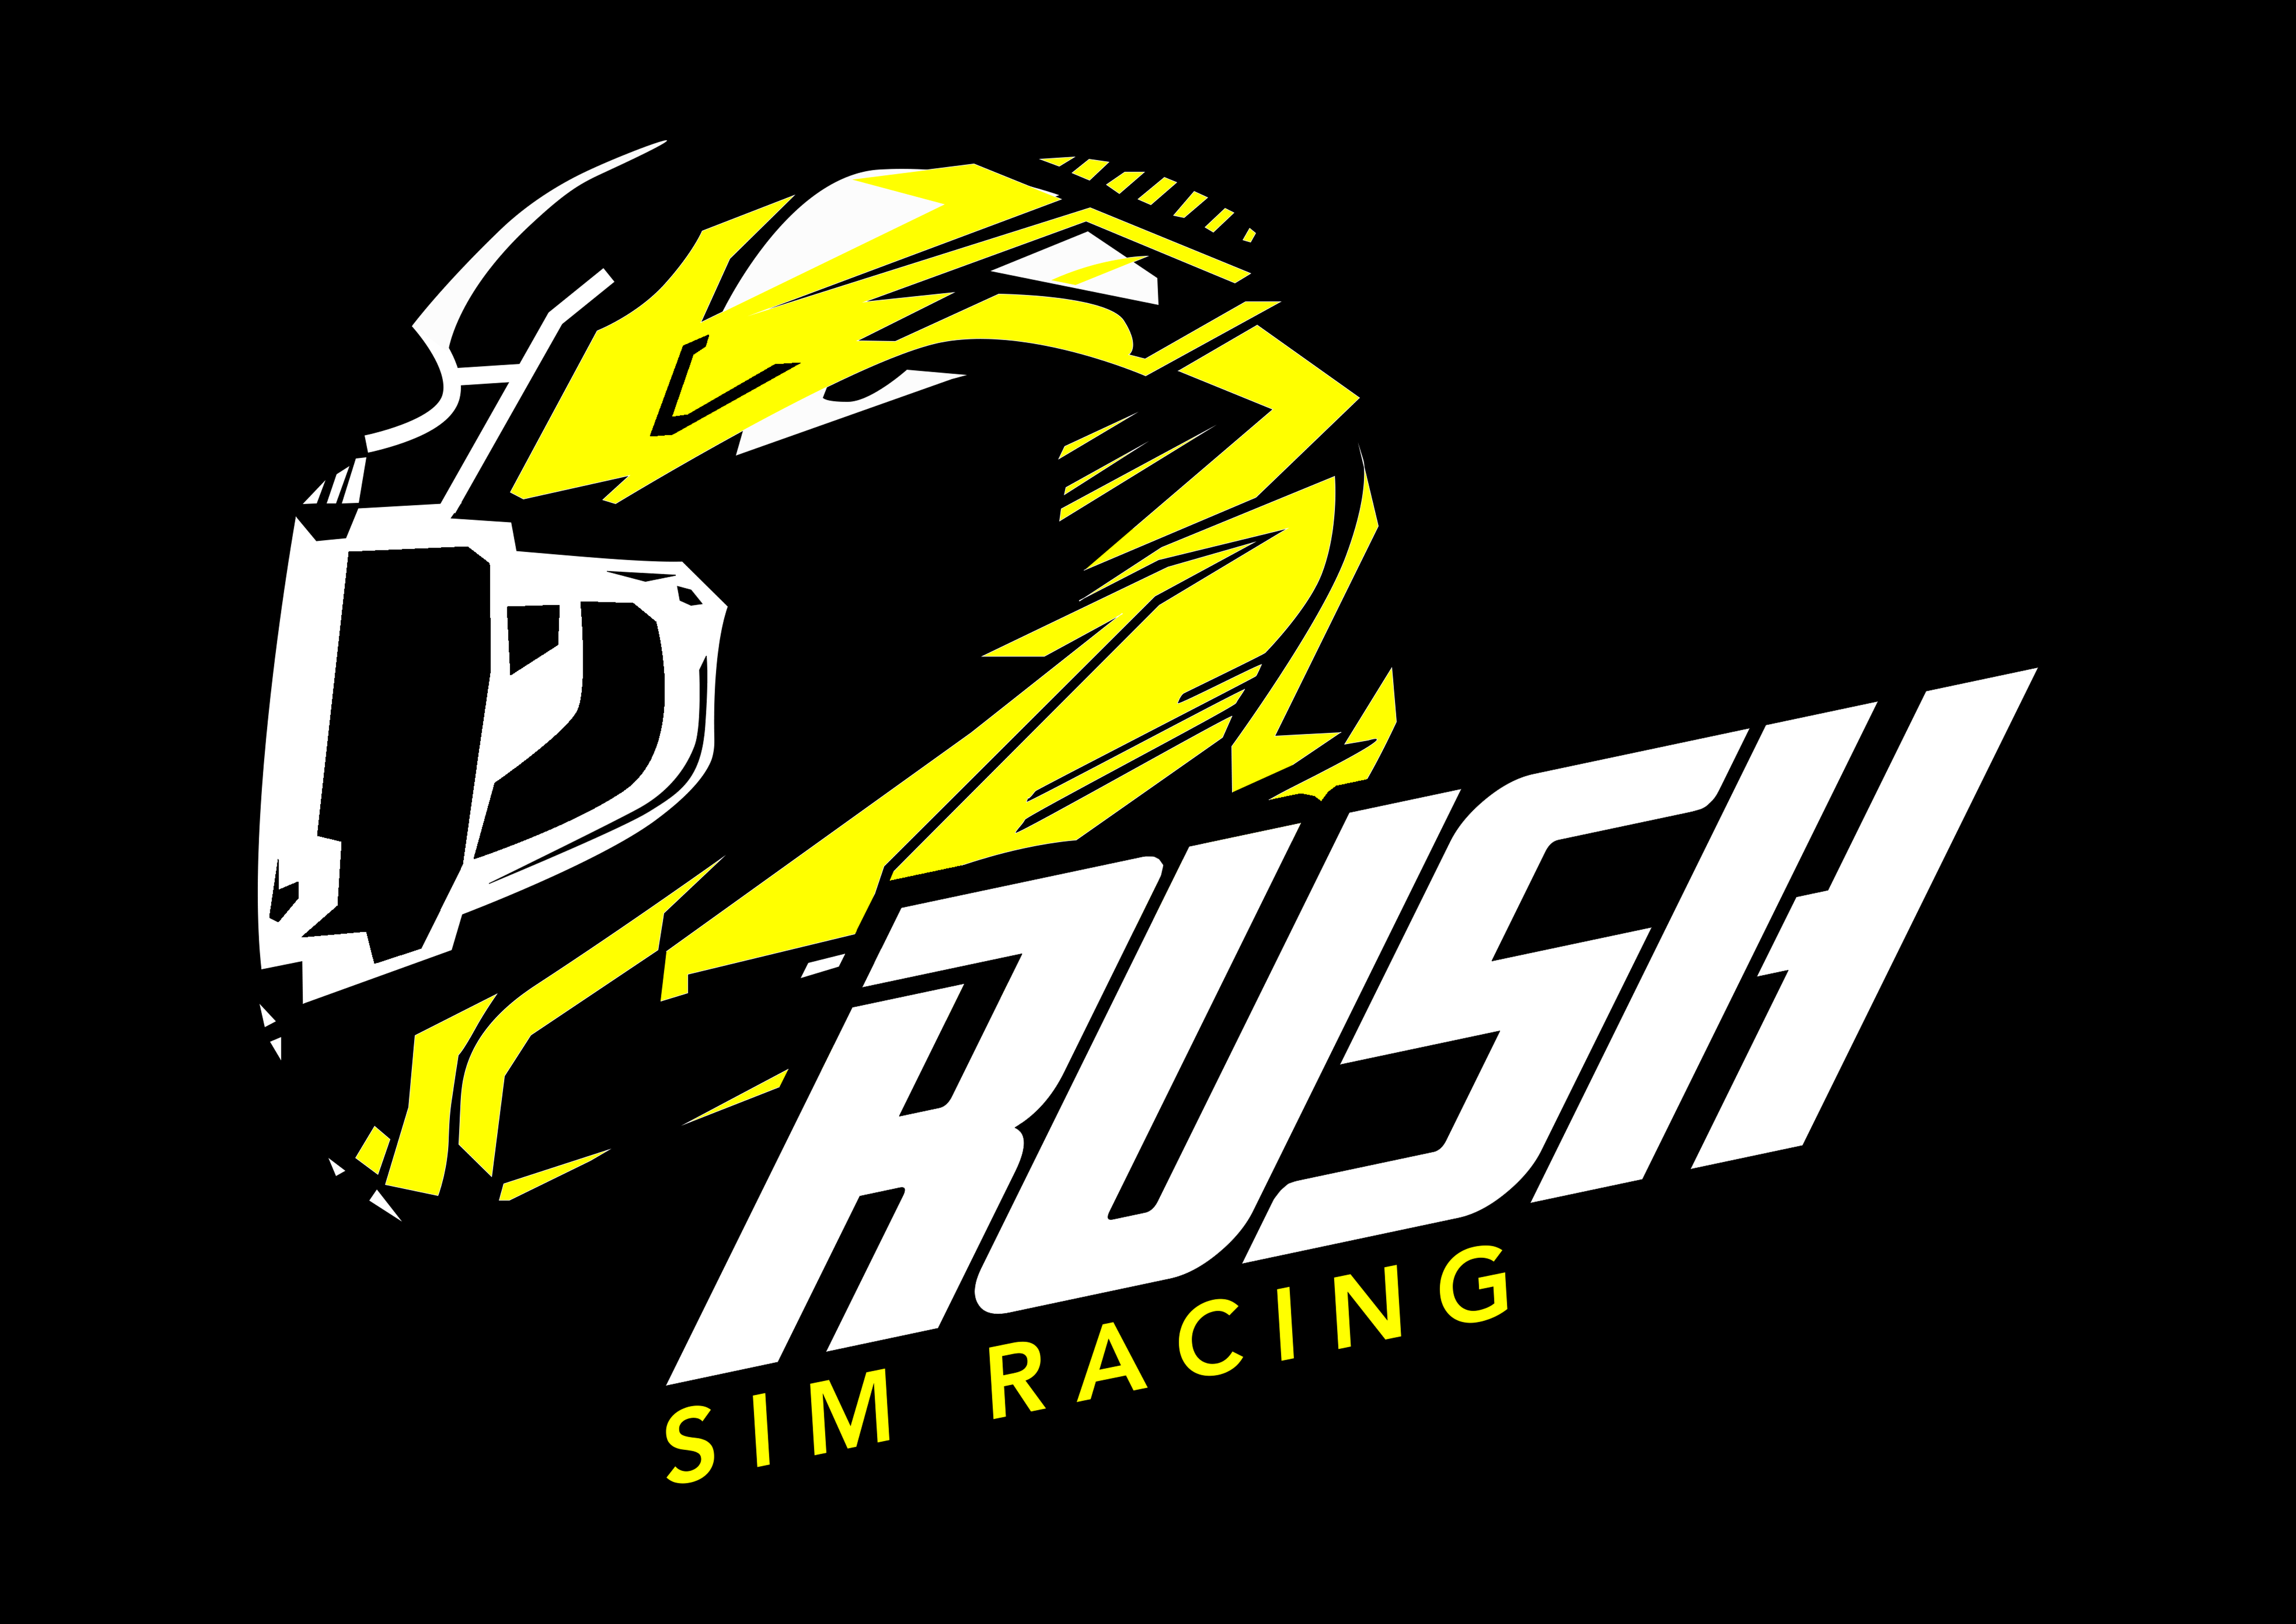 Rush Logo (Black Background)